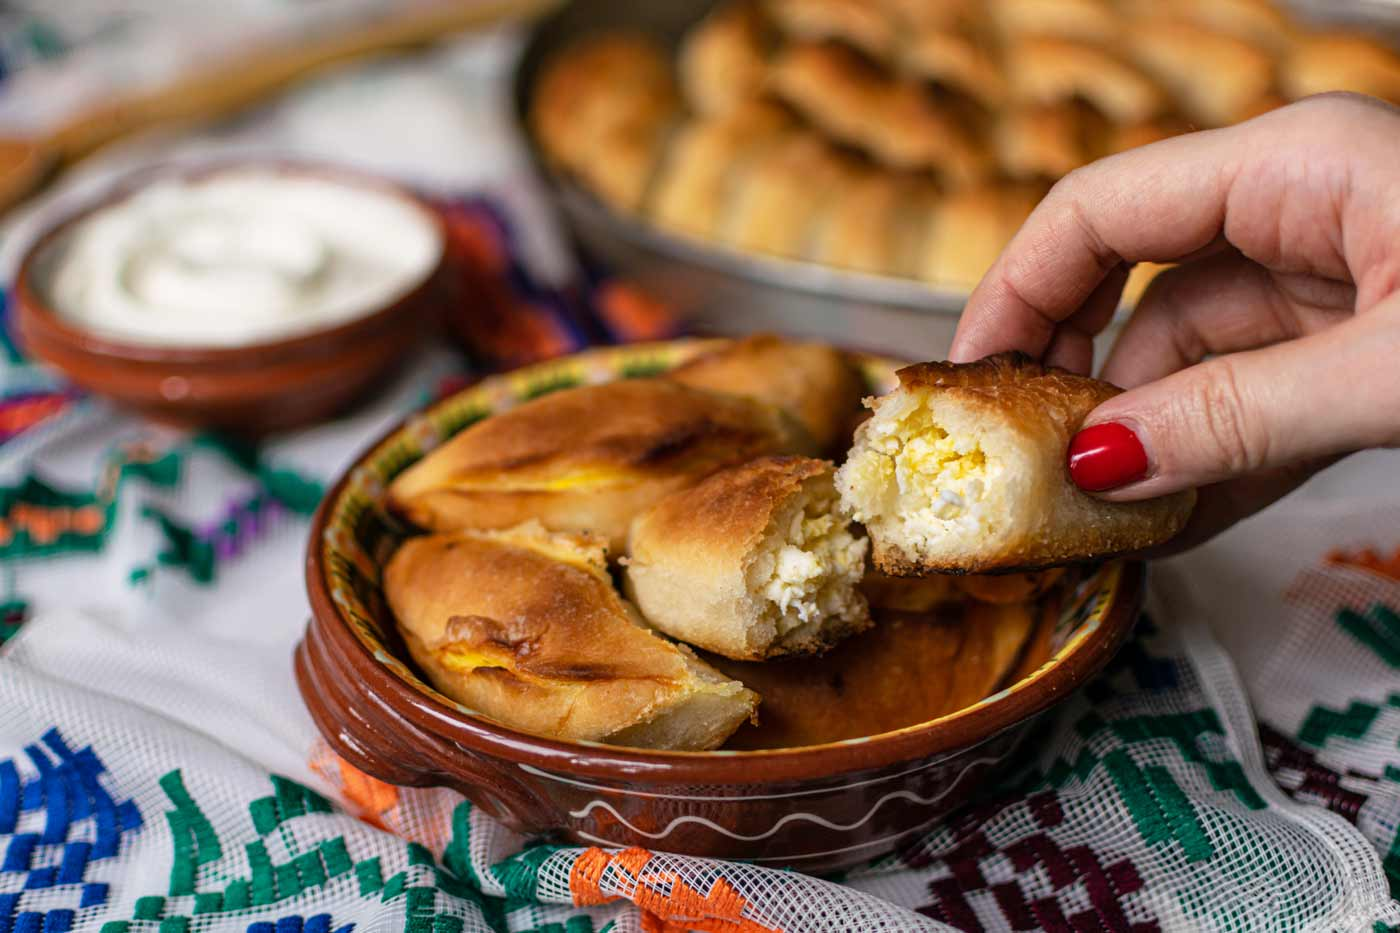 Cantik hand pie filled with white cheese and kashkaval cheese